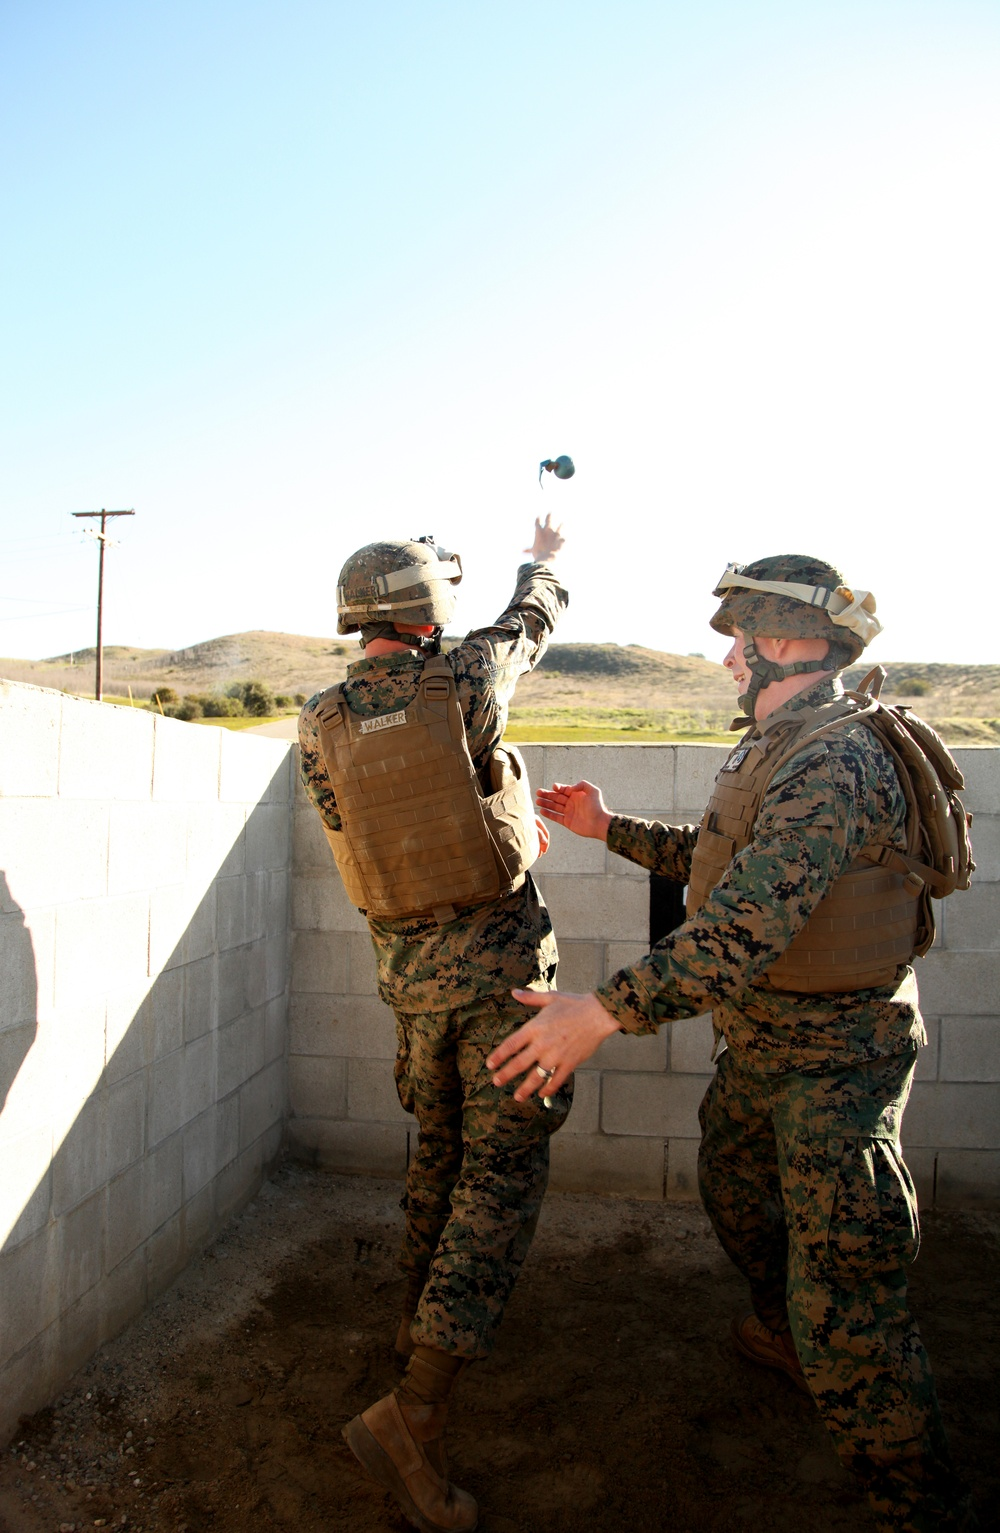 7th Engineer Support Battalion trains with grenades